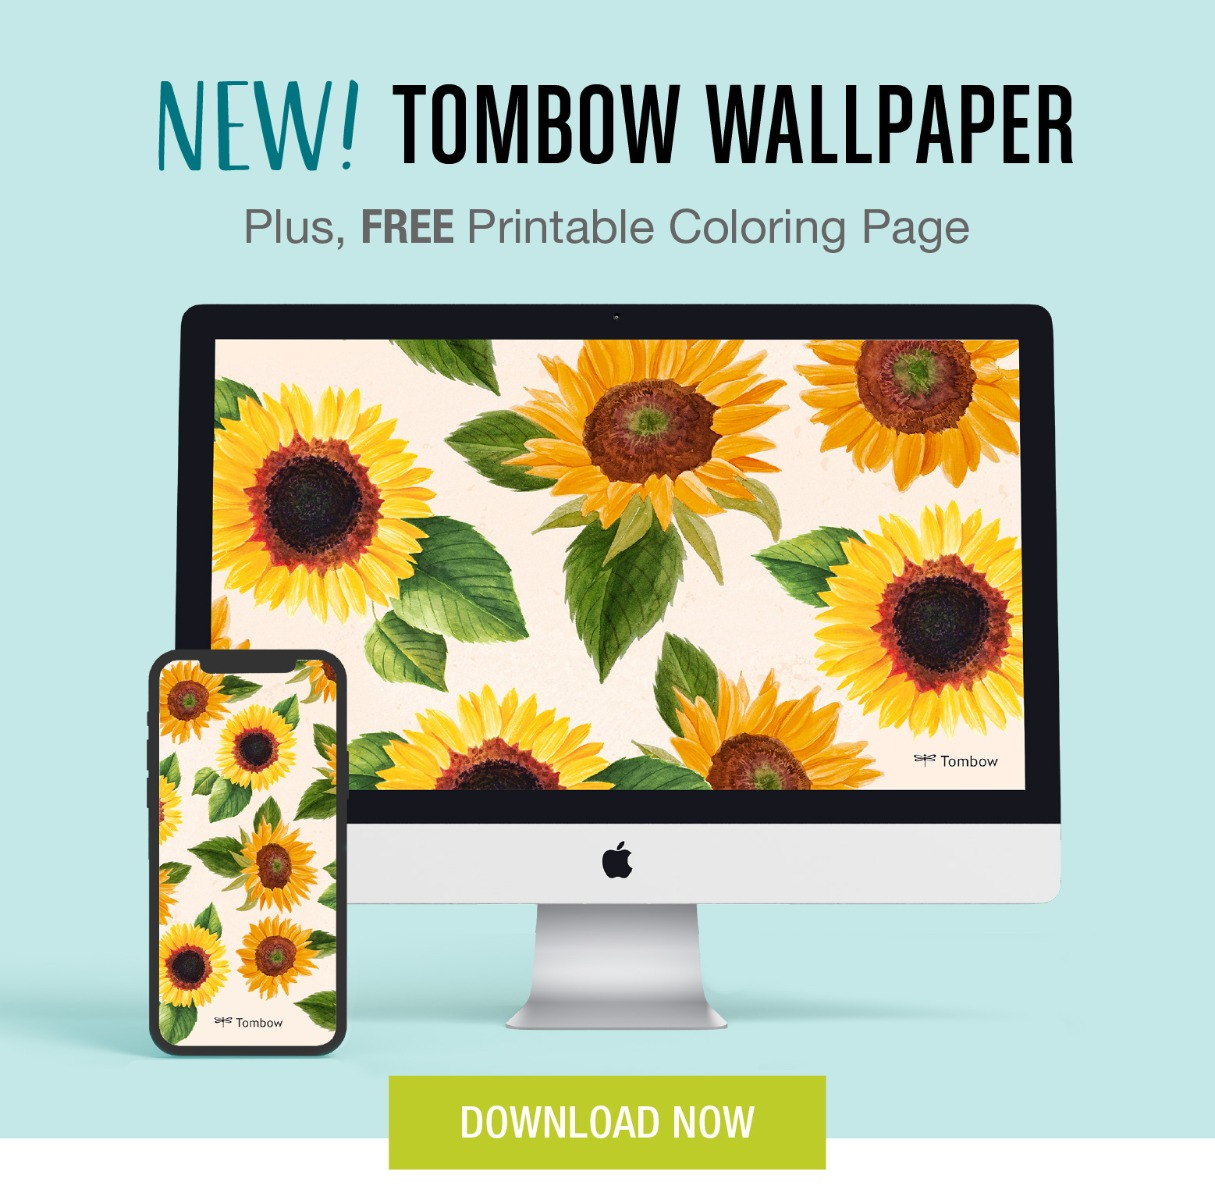 NEW! Tombow Wallpaper. Plus, FREE Printable Coloring Page